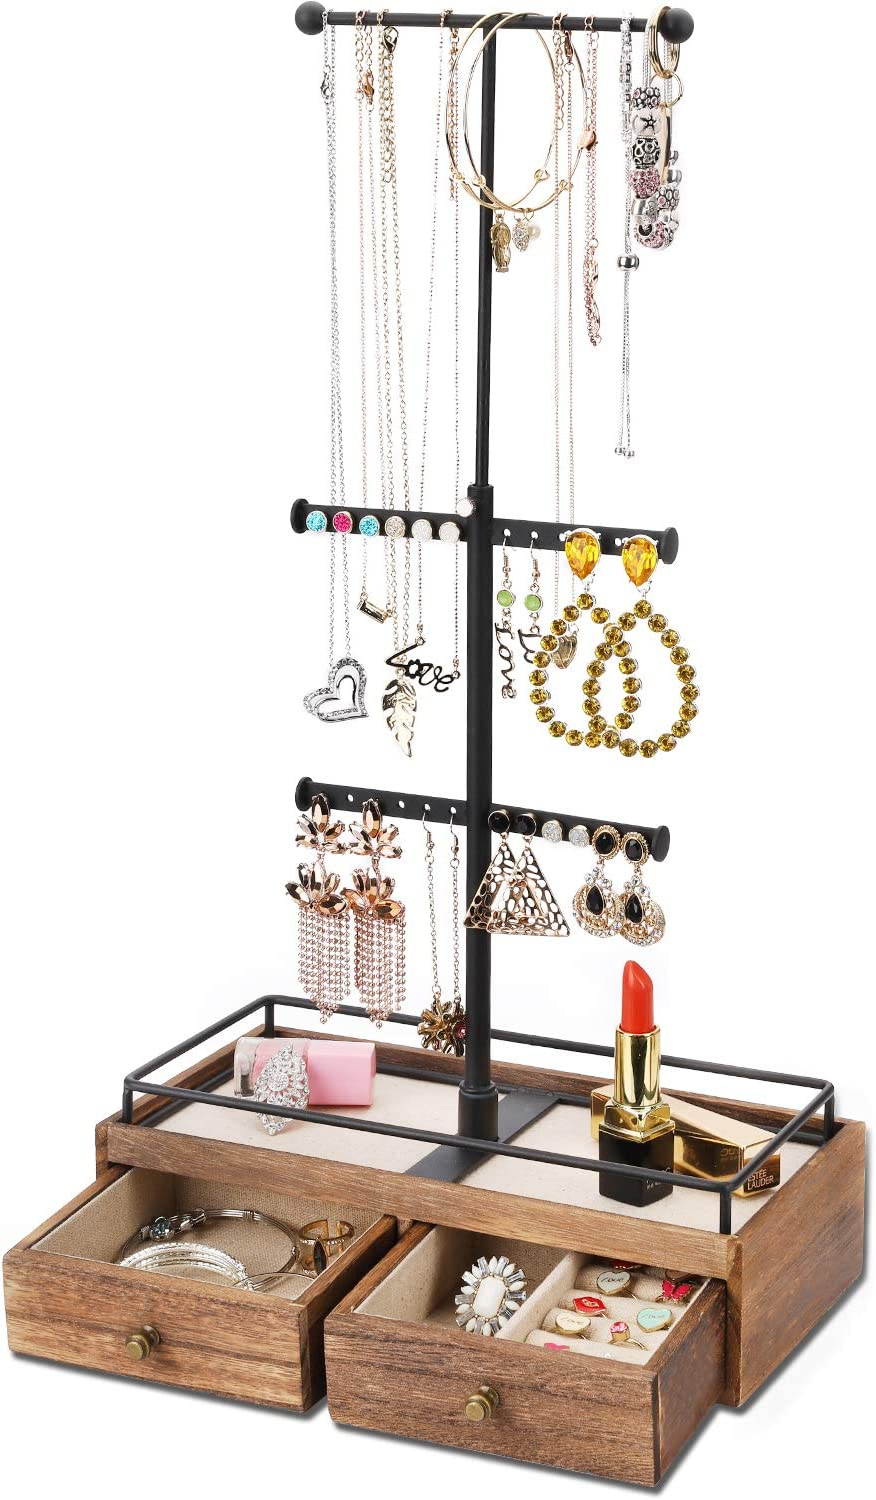 Keebofly Jewelry Organizer Metal Wood Basic Storage Box 3 Tier Jewelry Stand For Necklaces Bracelet Earrings Ring Carbonized Black Amazon Ca Tools Home Improvement